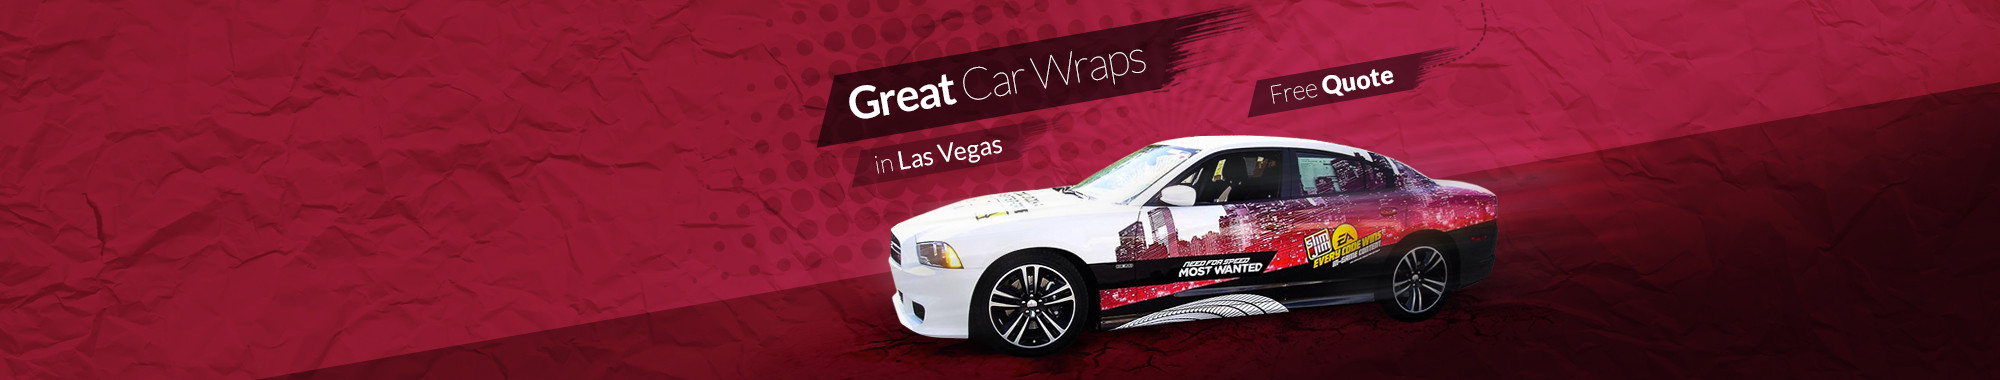 great car wraps in las vegas